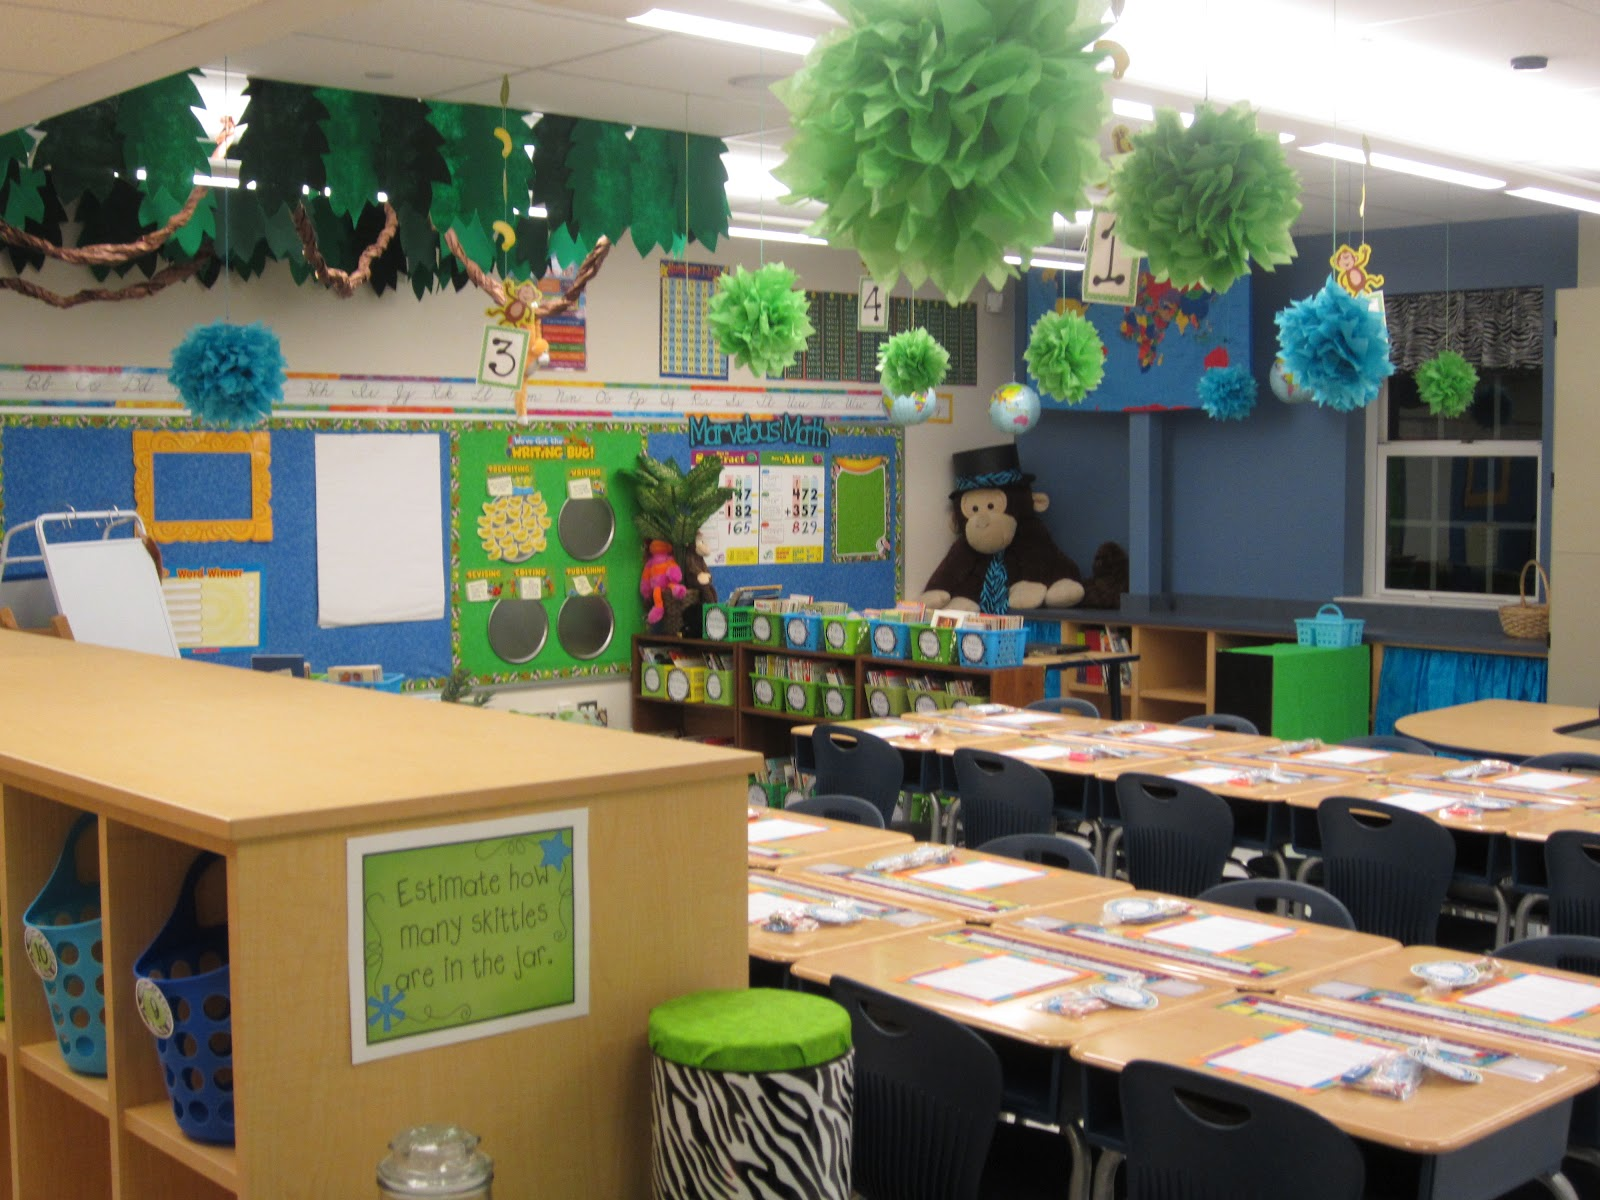 Cool Classroom Design Ideas : The creative chalkboard classroom tour pictures galore